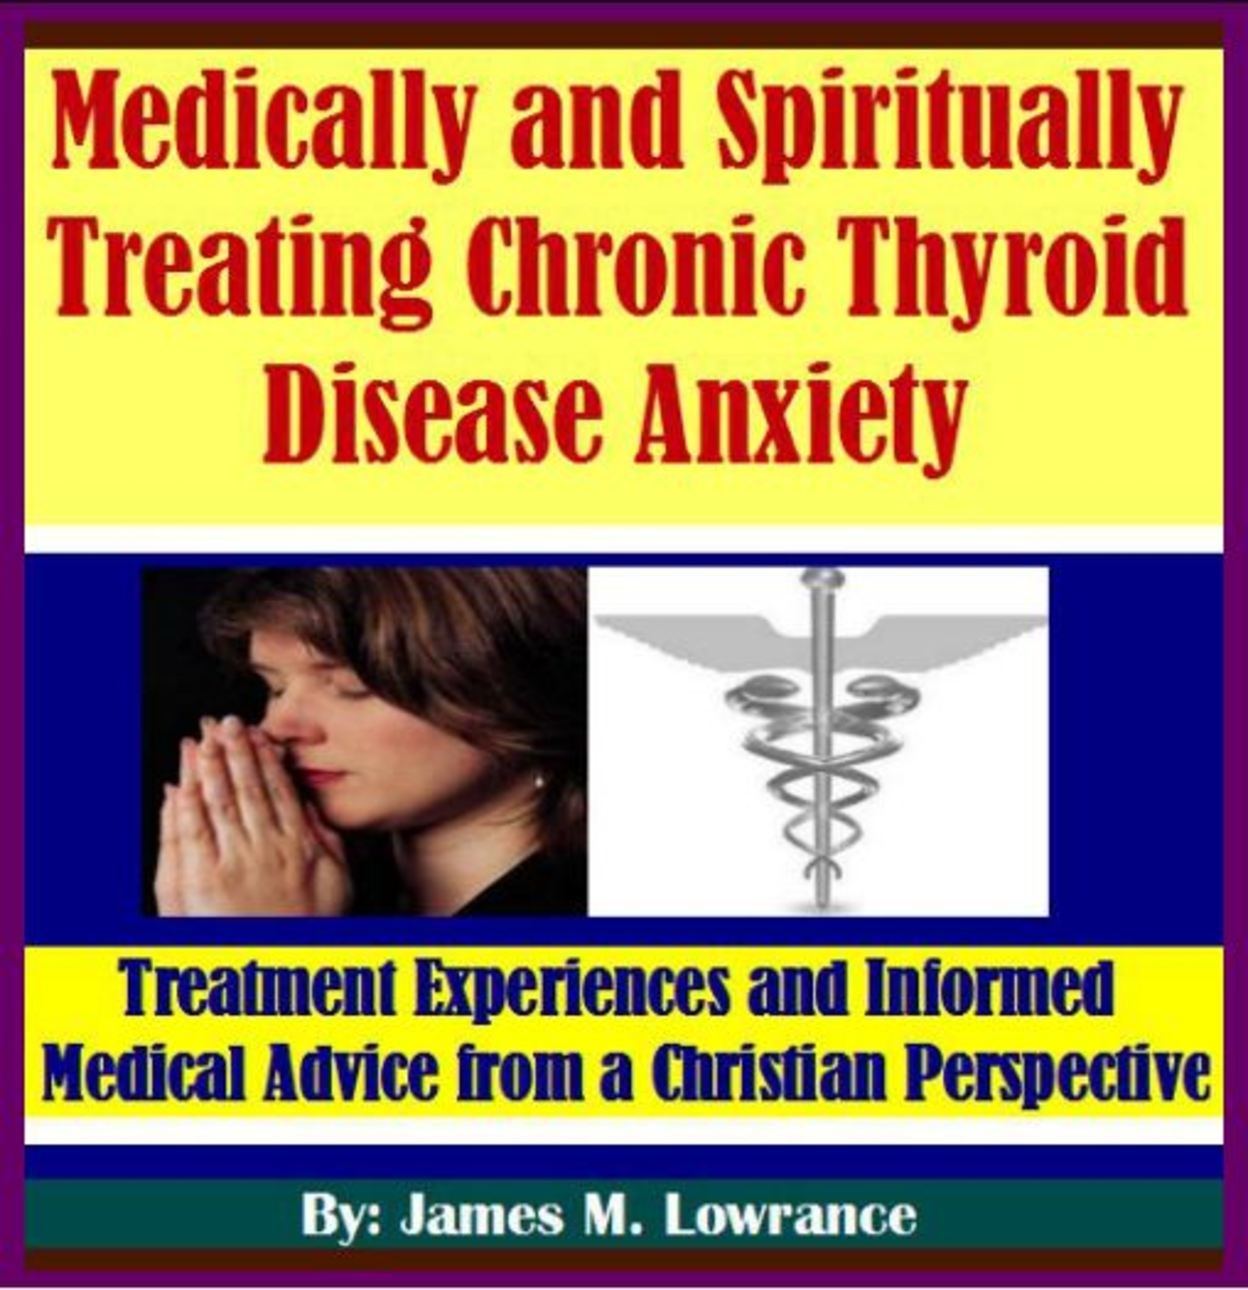 Medically and Spiritually Treating Chronic Thyroid Disease Anxiety